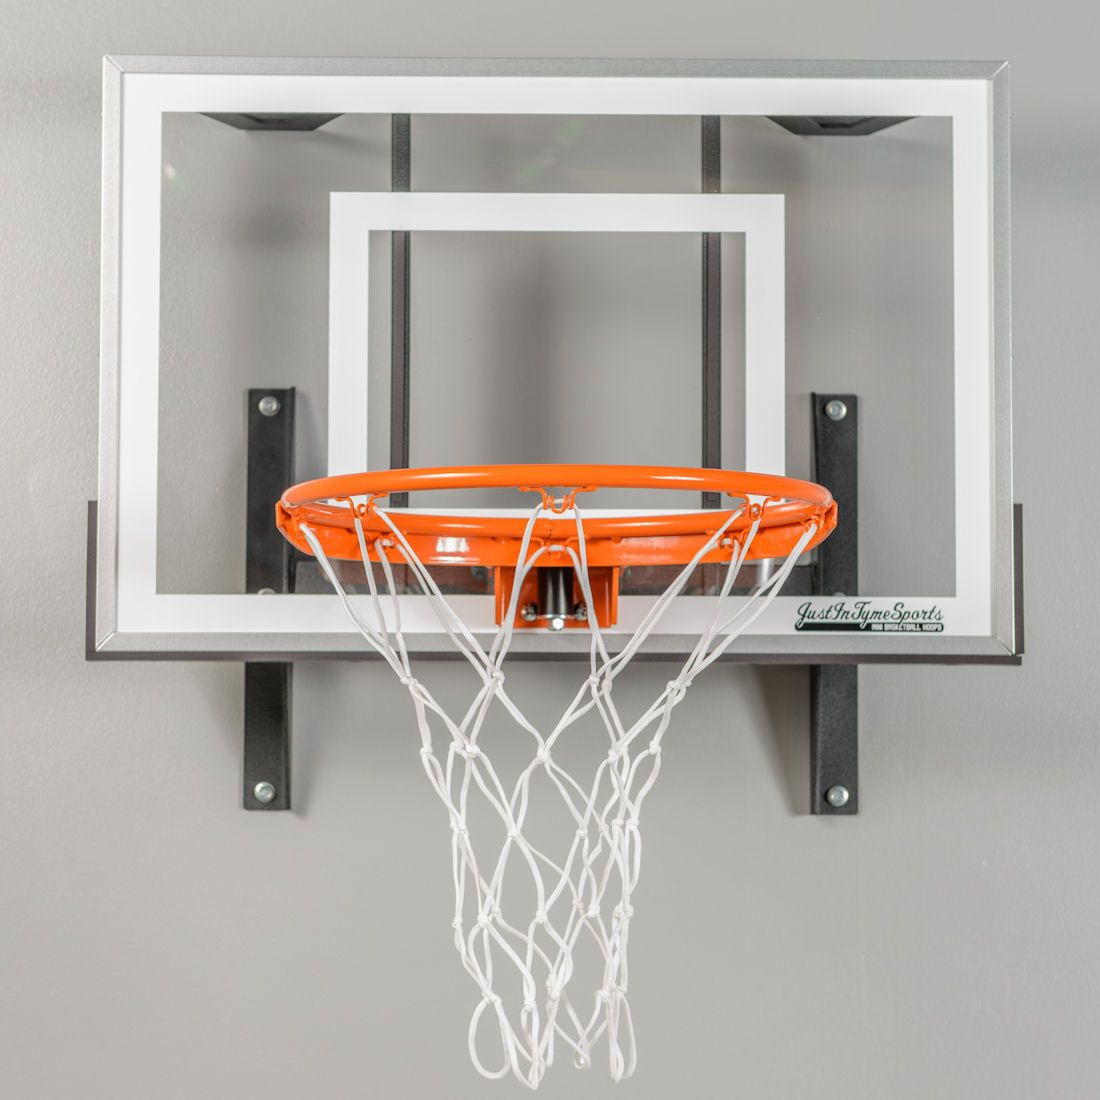 Mini Pro Xtreme Basketball Hoop Set Mini Basketball Hoop Mini Basketballs Indoor Basketball Hoop